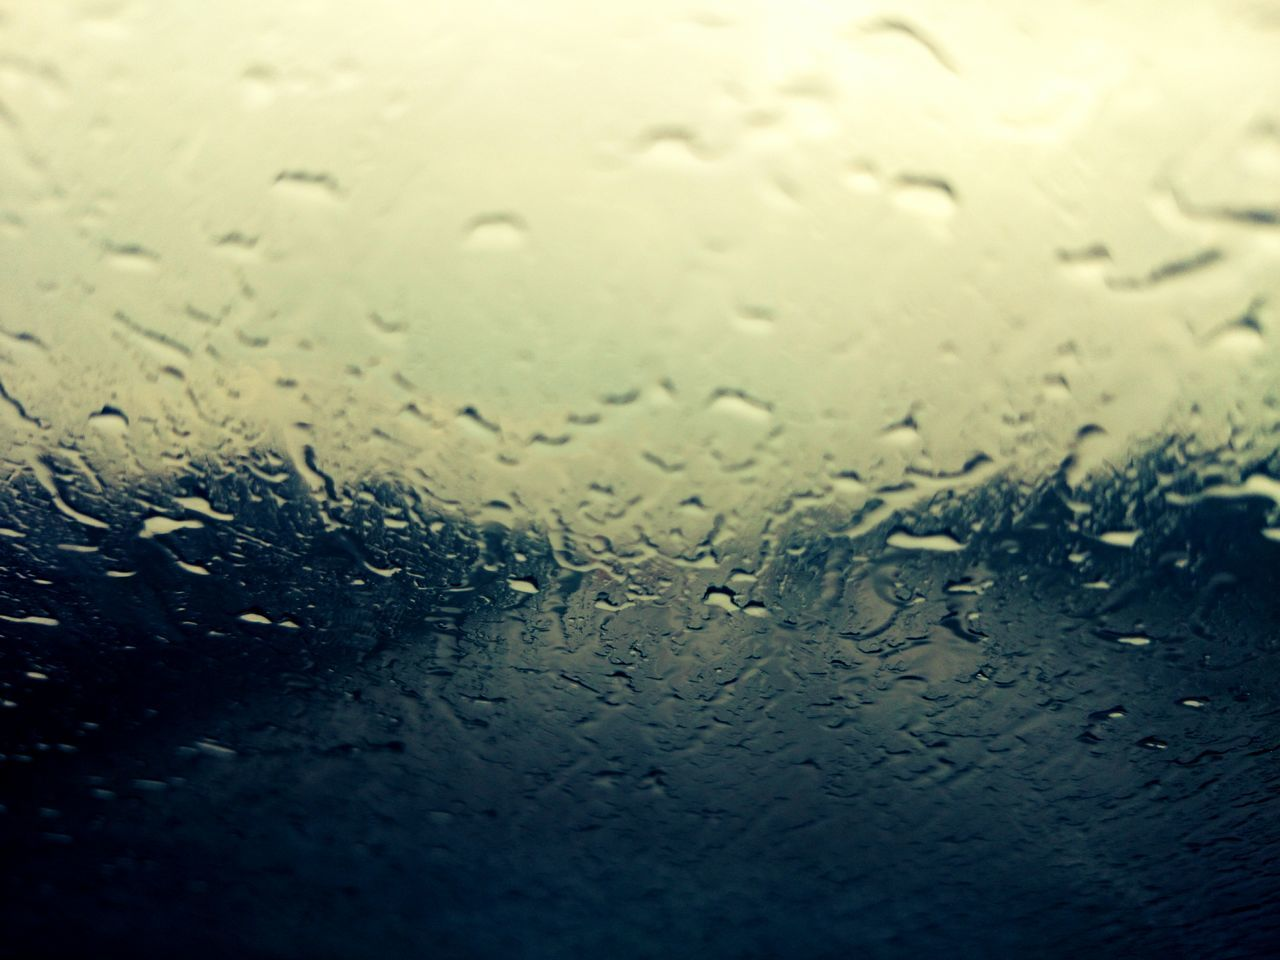 rain, wet, drop, water, full frame, weather, window, raindrop, rainy season, glass - material, backgrounds, no people, close-up, indoors, land vehicle, car, transportation, mode of transport, day, nature, freshness, sky, airplane wing